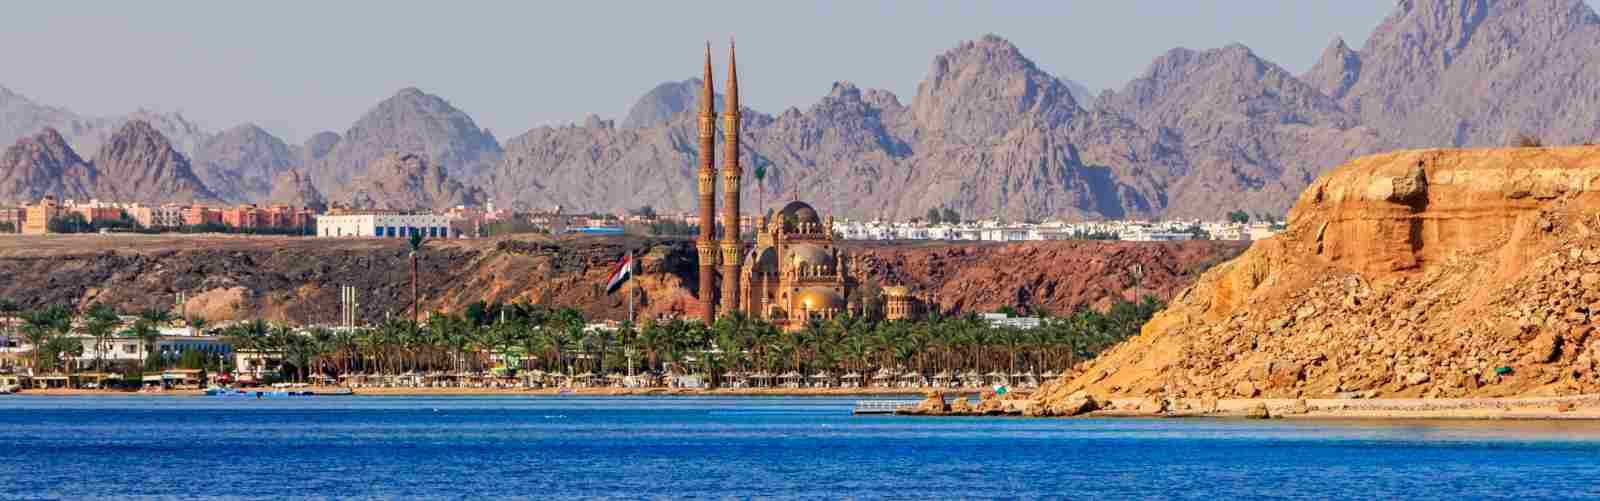 Sharm El Sheikh City